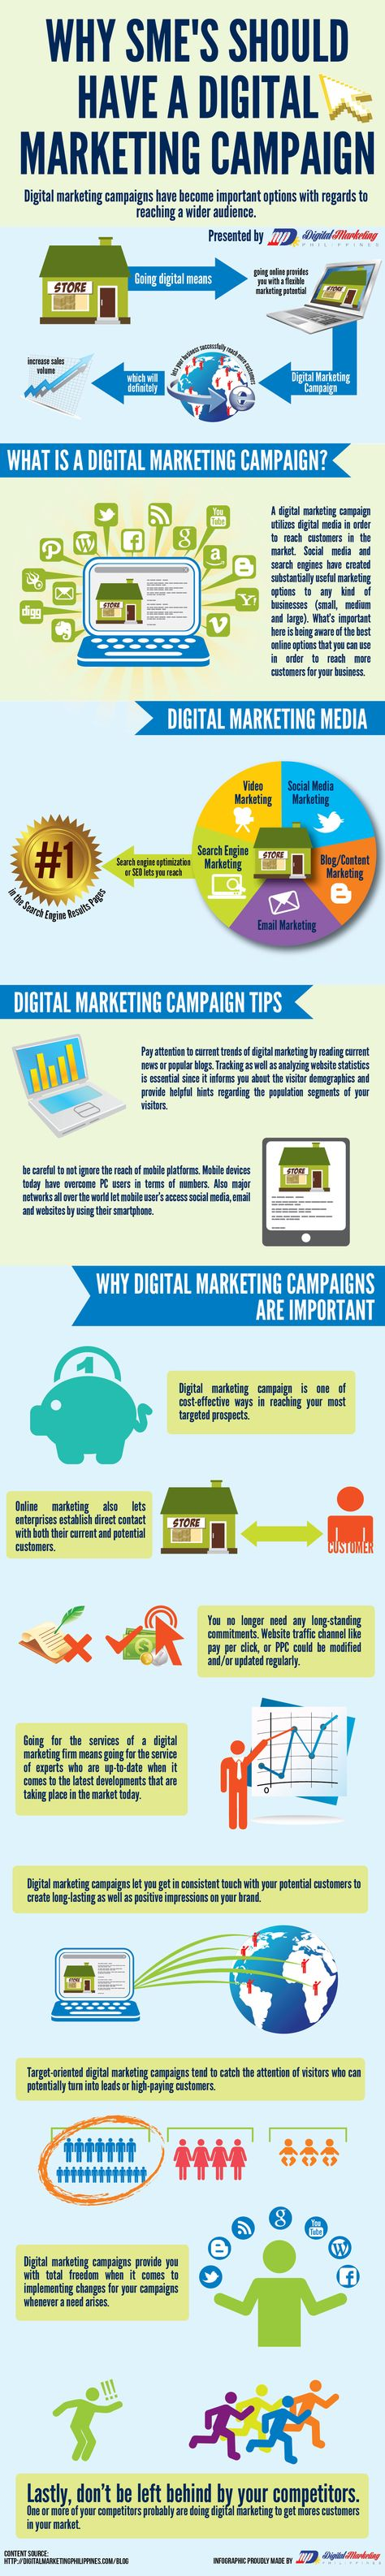 Why SME's Should Have A Digital Marketing Campaign?